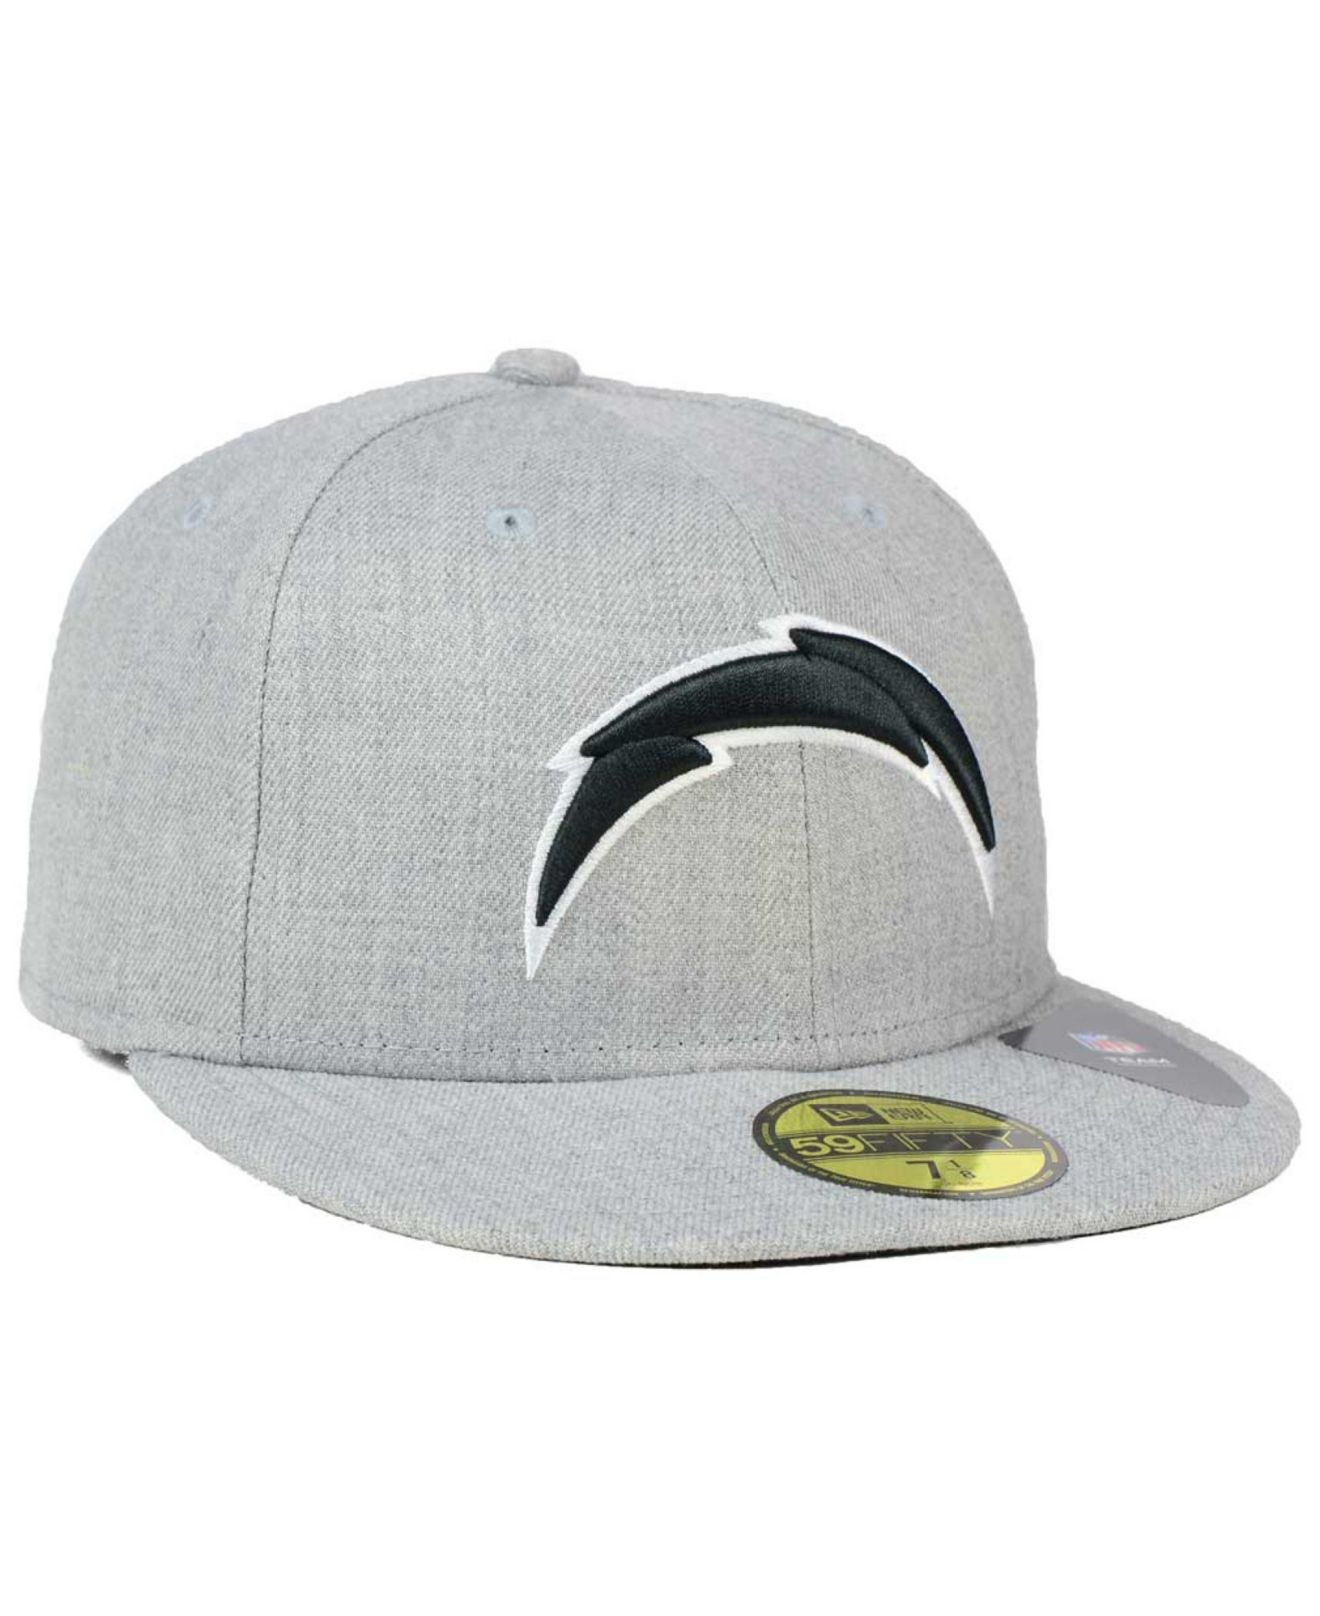 San Diego Chargers Fitted Hats: Ktz San Diego Chargers Heather Black White 59fifty Cap In